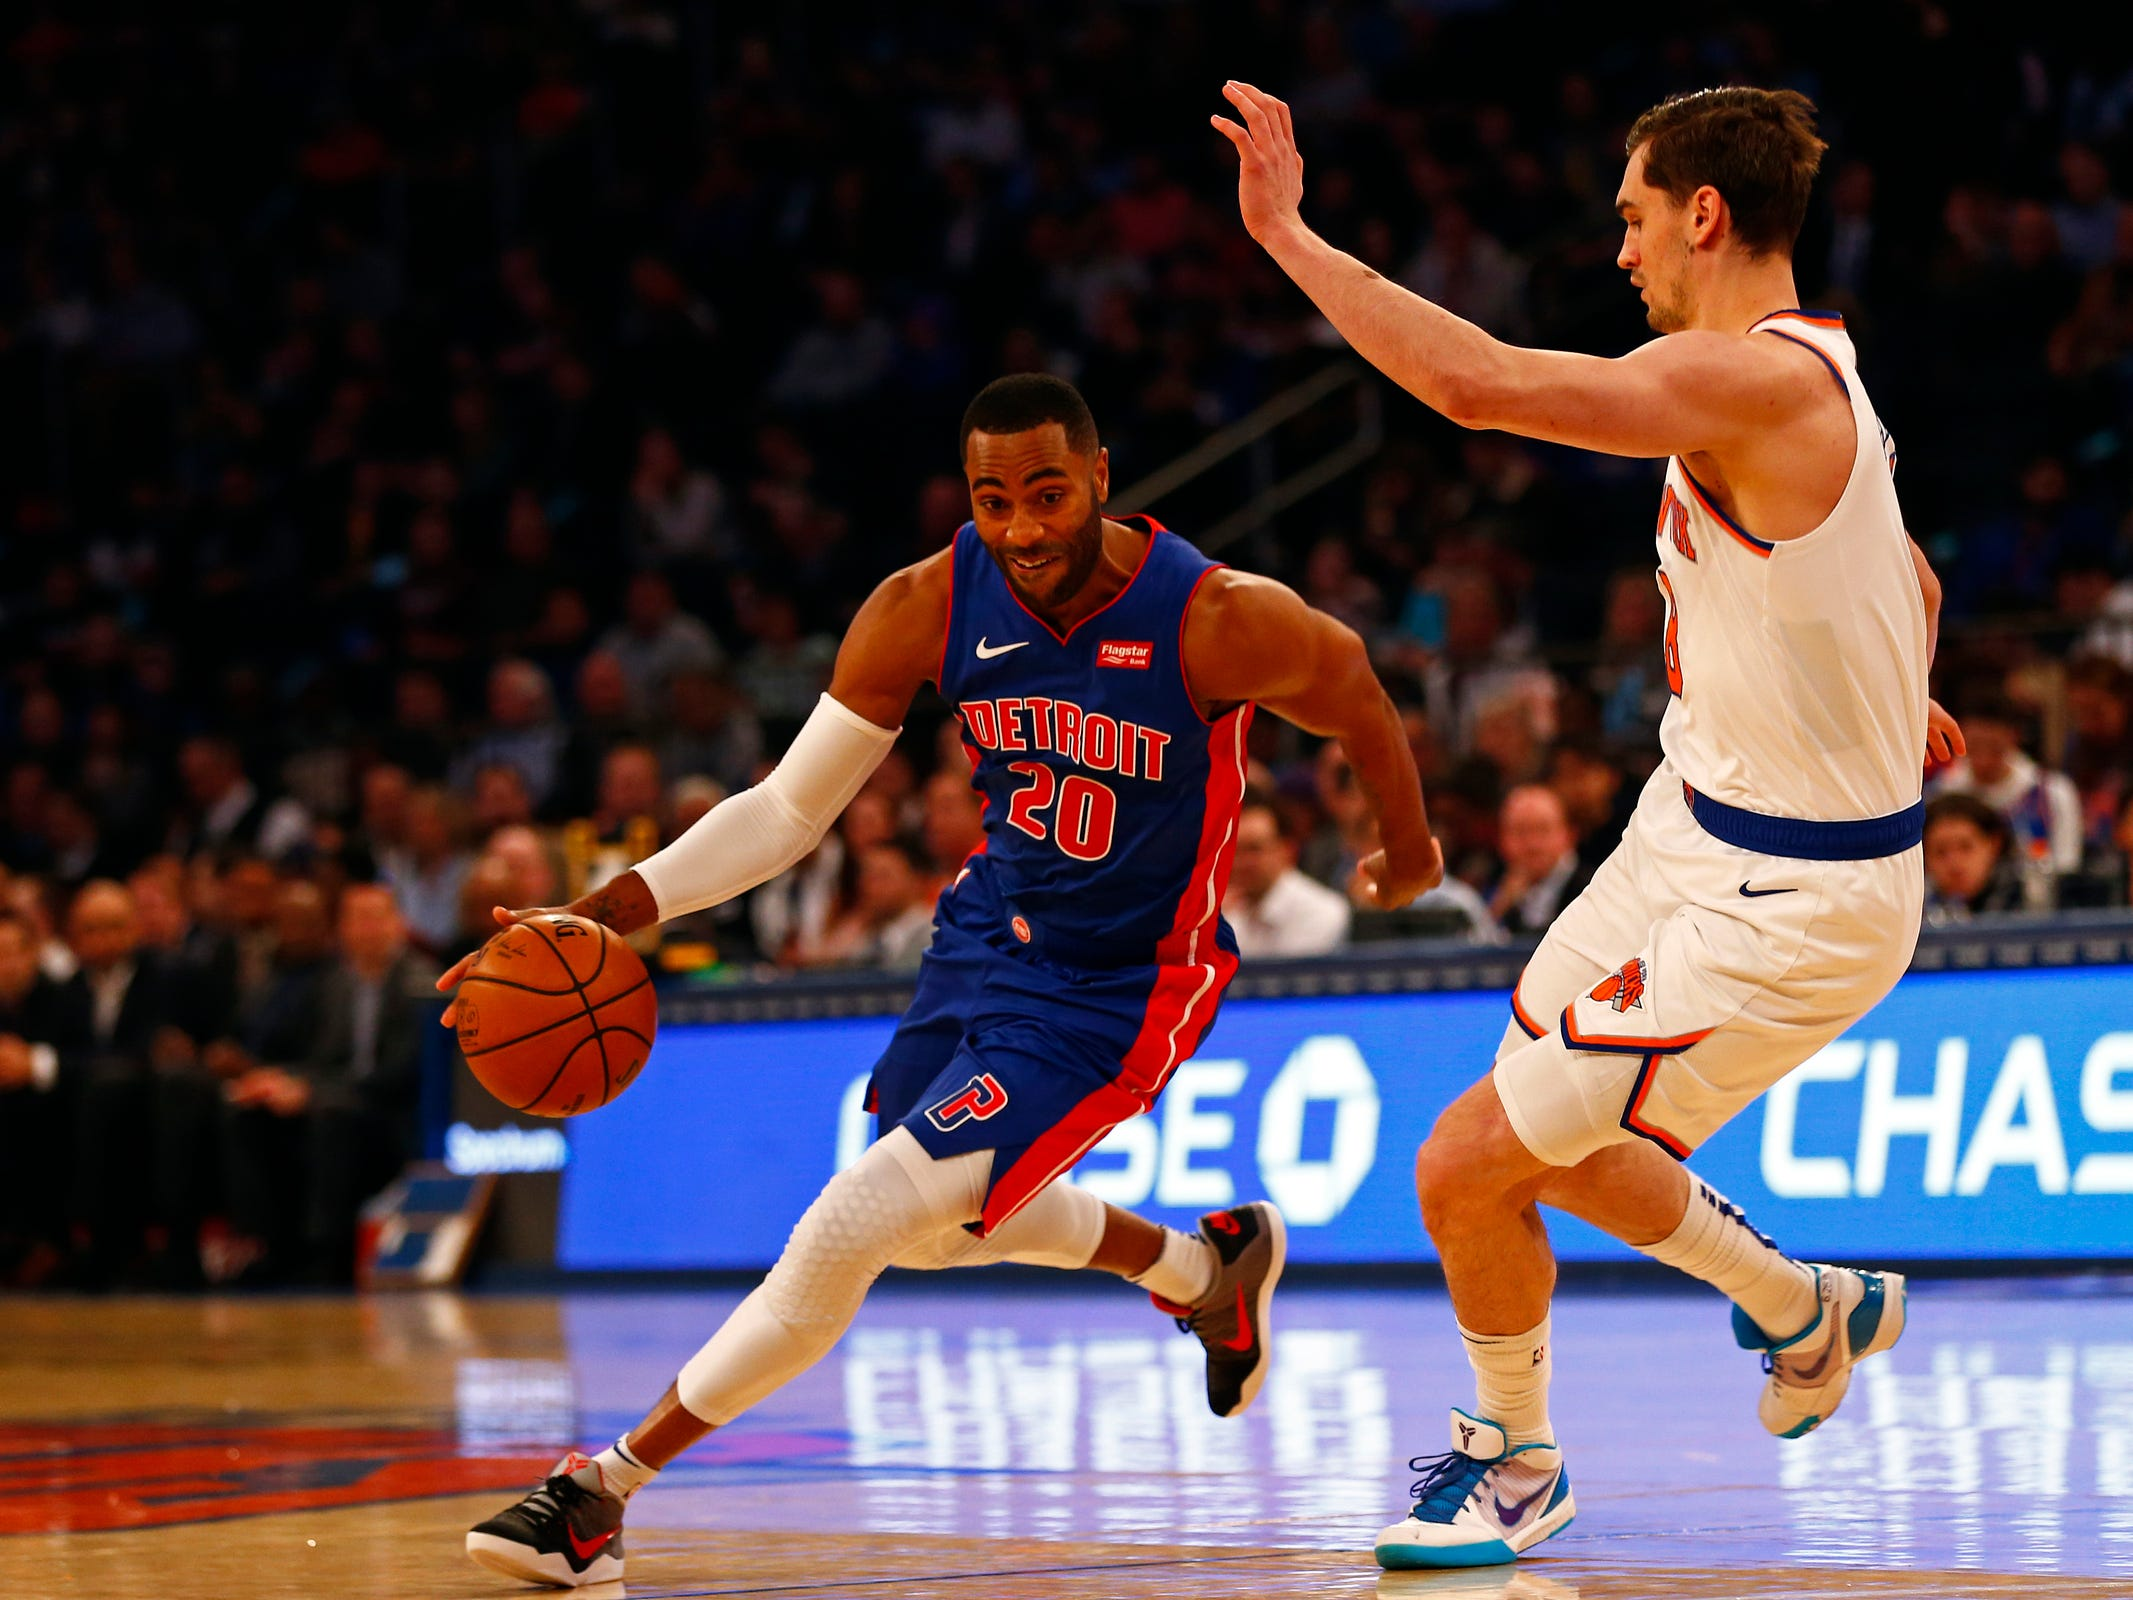 Detroit Pistons guard Wayne Ellington (20) drives to the basket past New York Knicks forward Mario Hezonja (8) during the first half at Madison Square Garden on Wednesday, April 10, 2019.